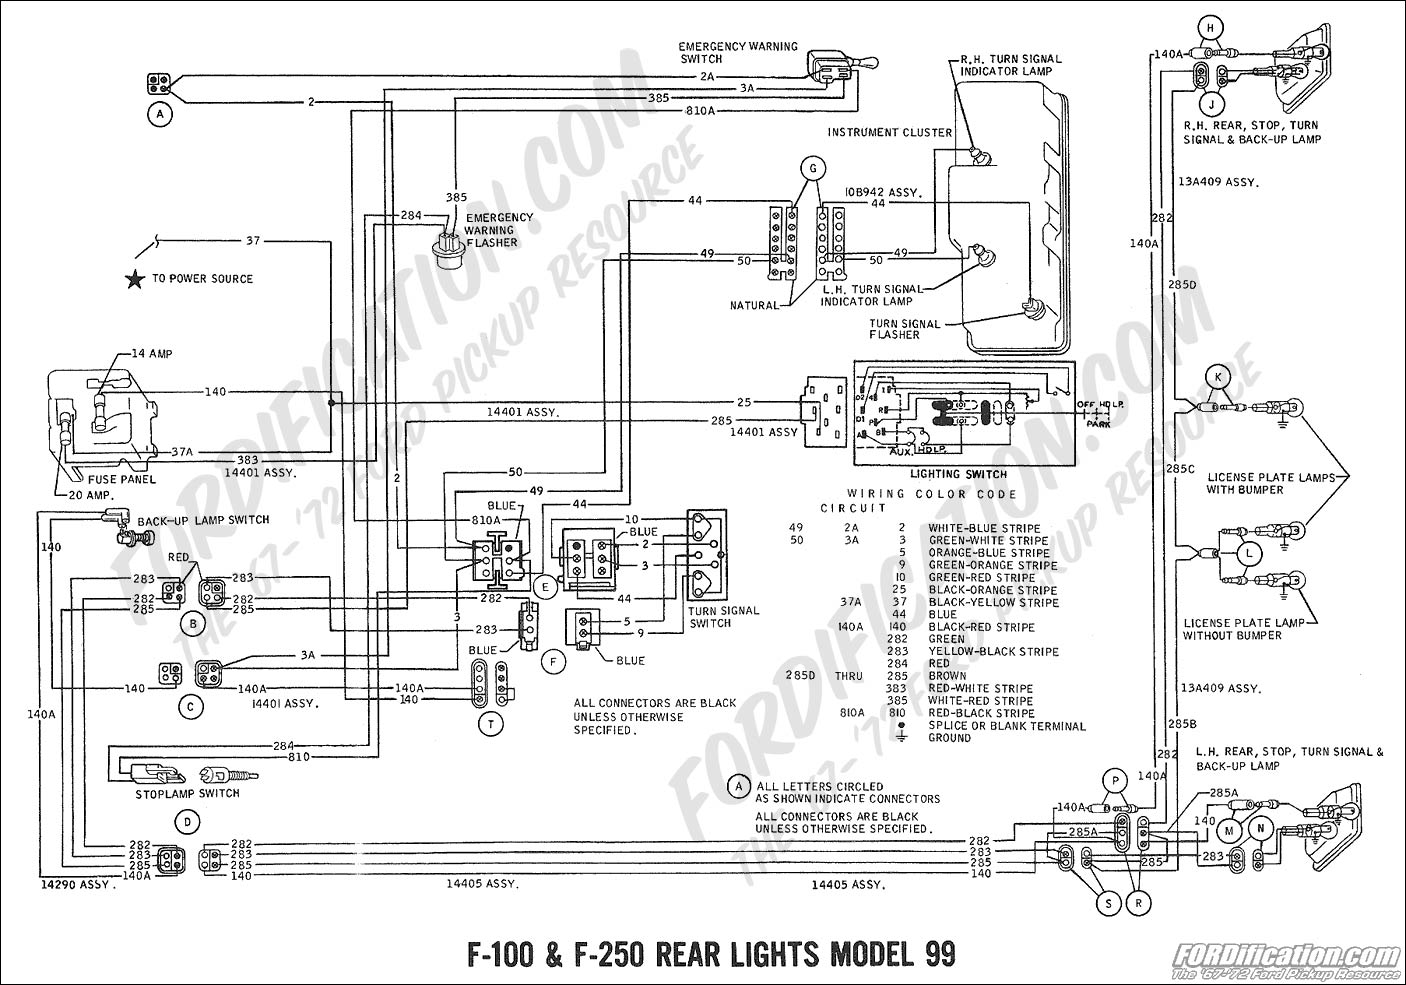 Dodge Caravan Engine Diagram Egr Get Free Image About